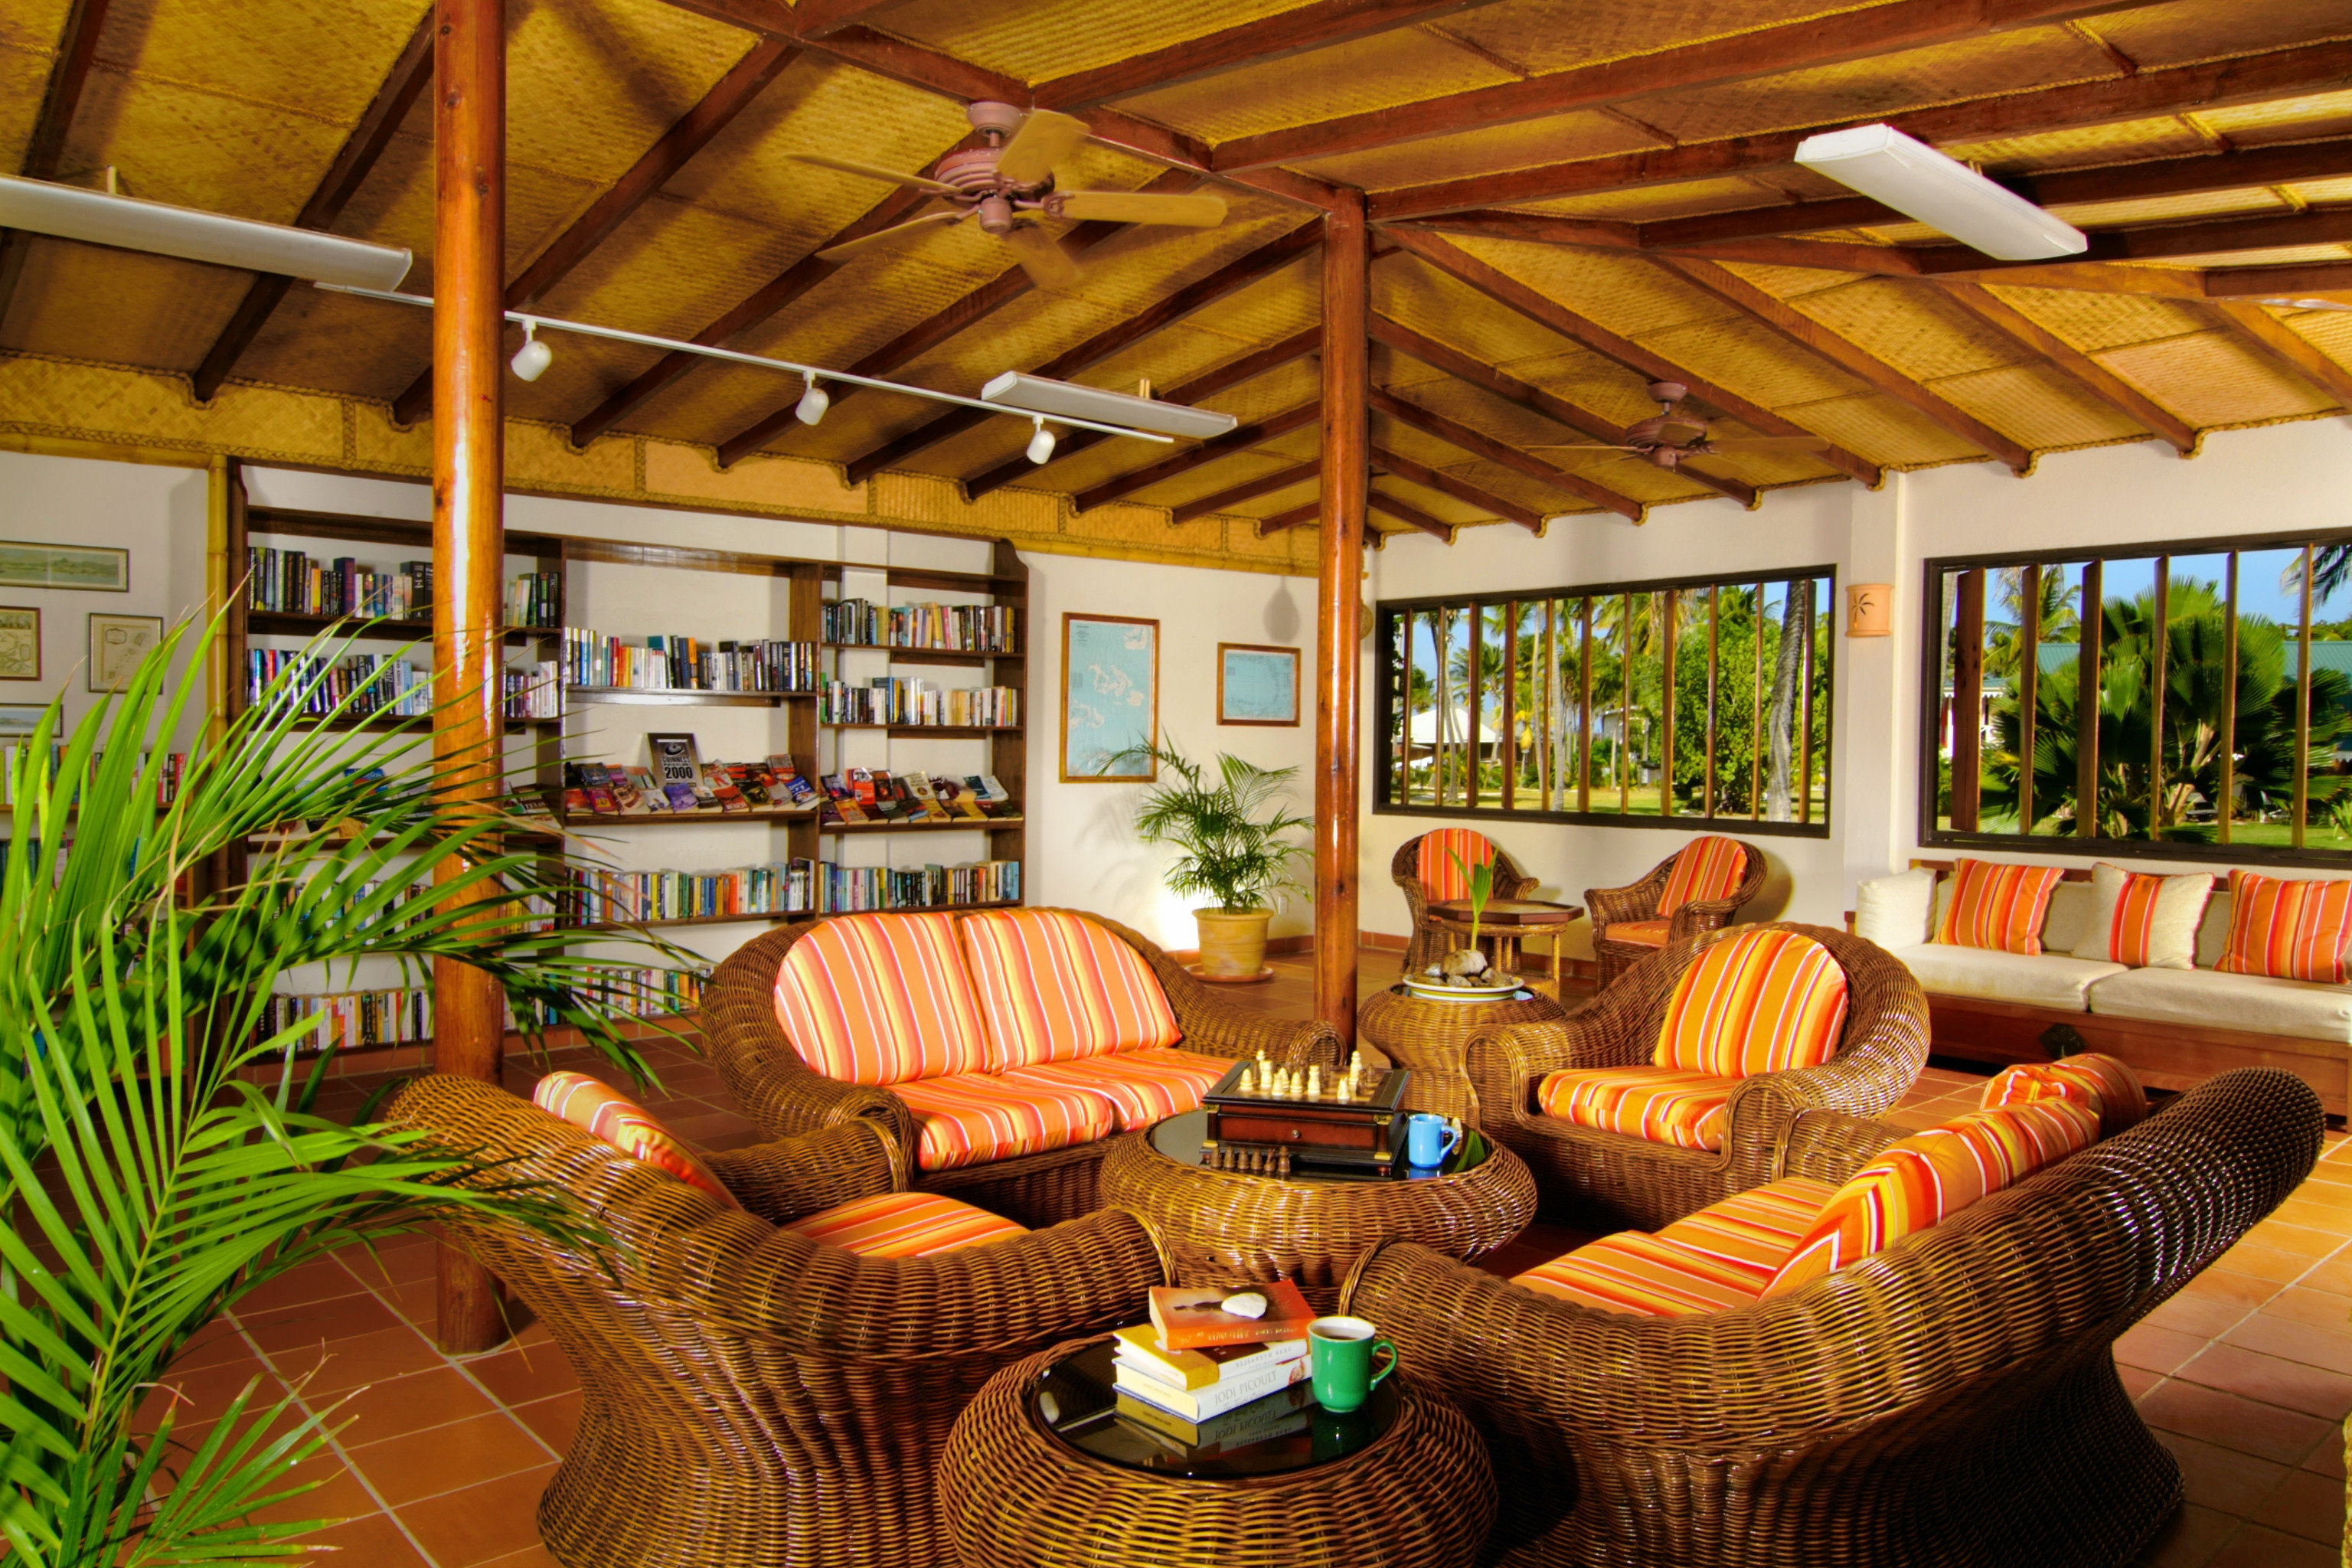 Entertainment Hotels Lounge Resort indoor ceiling property room estate porch home living room cottage real estate log cabin outdoor structure interior design backyard eco hotel farmhouse Villa furniture